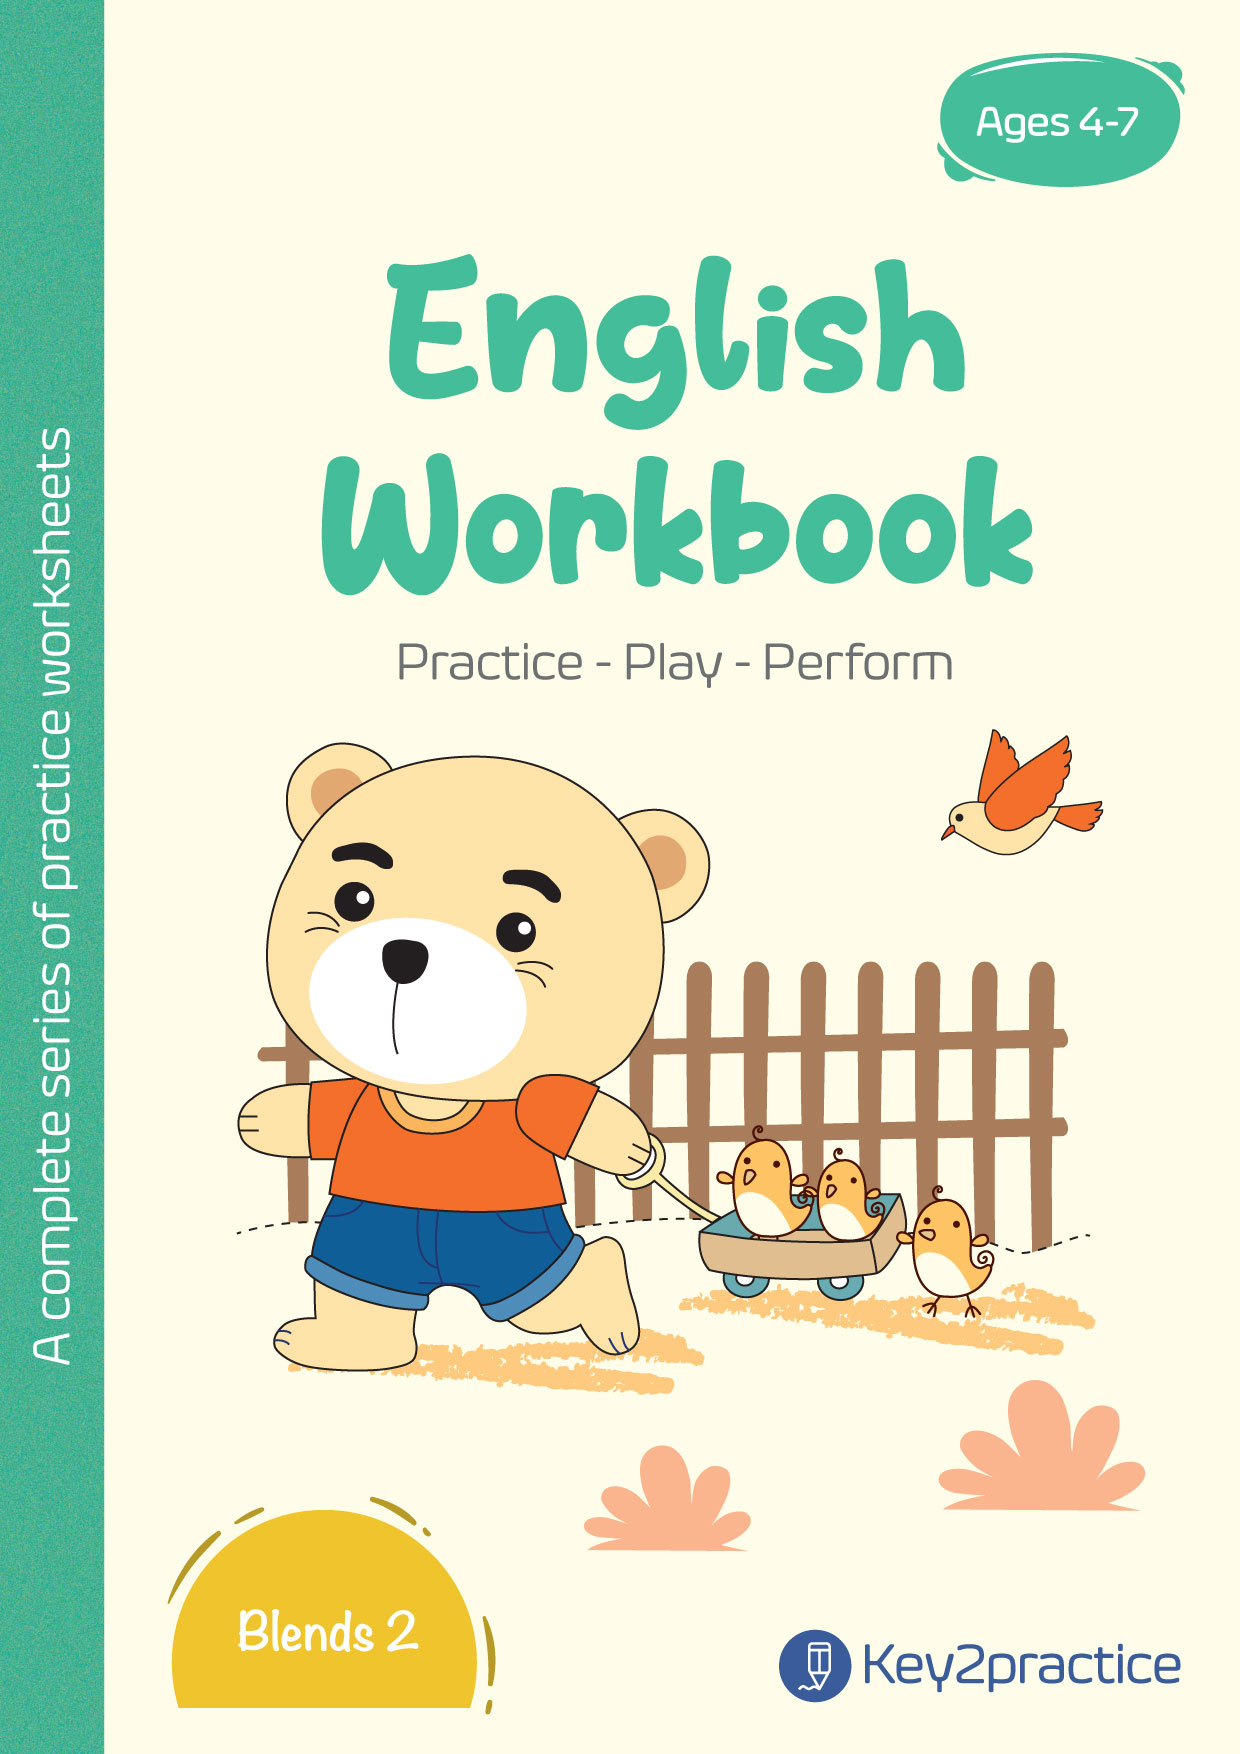 English Worksheets Grade 1 Concept Blends